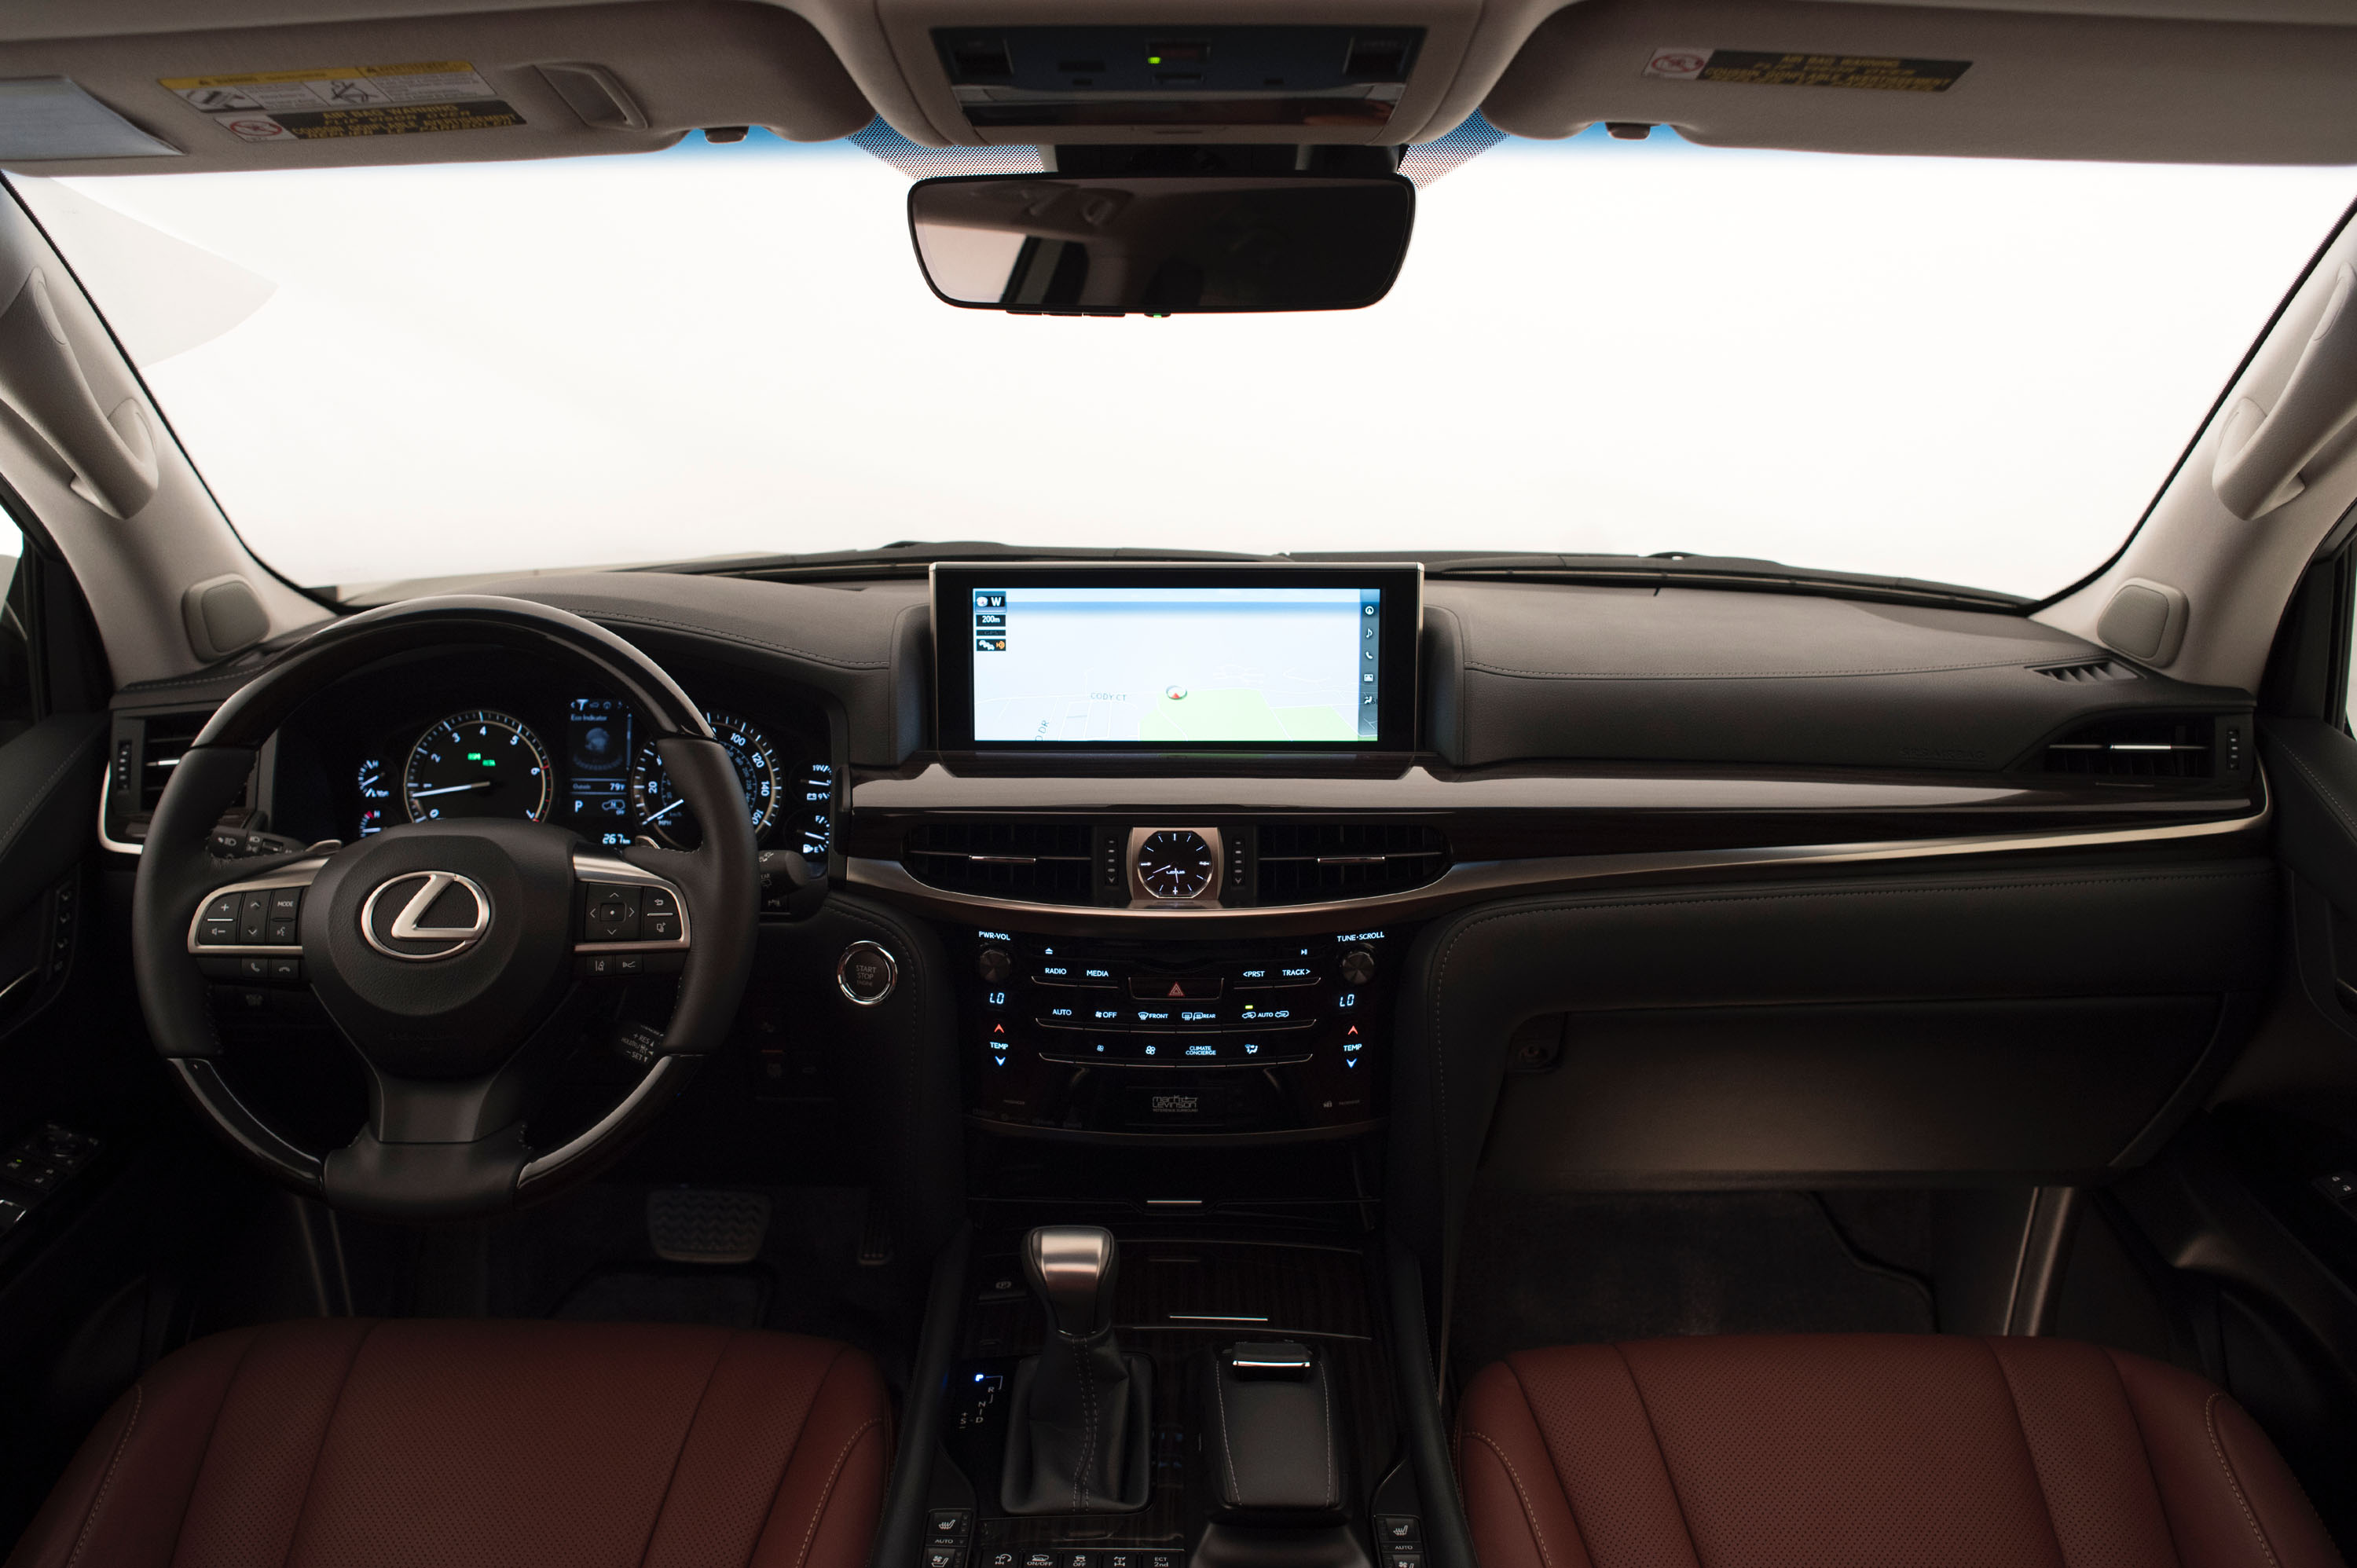 2020 Lexus Lx 570 Suv Experience An Amazing Car Texas Hill Country